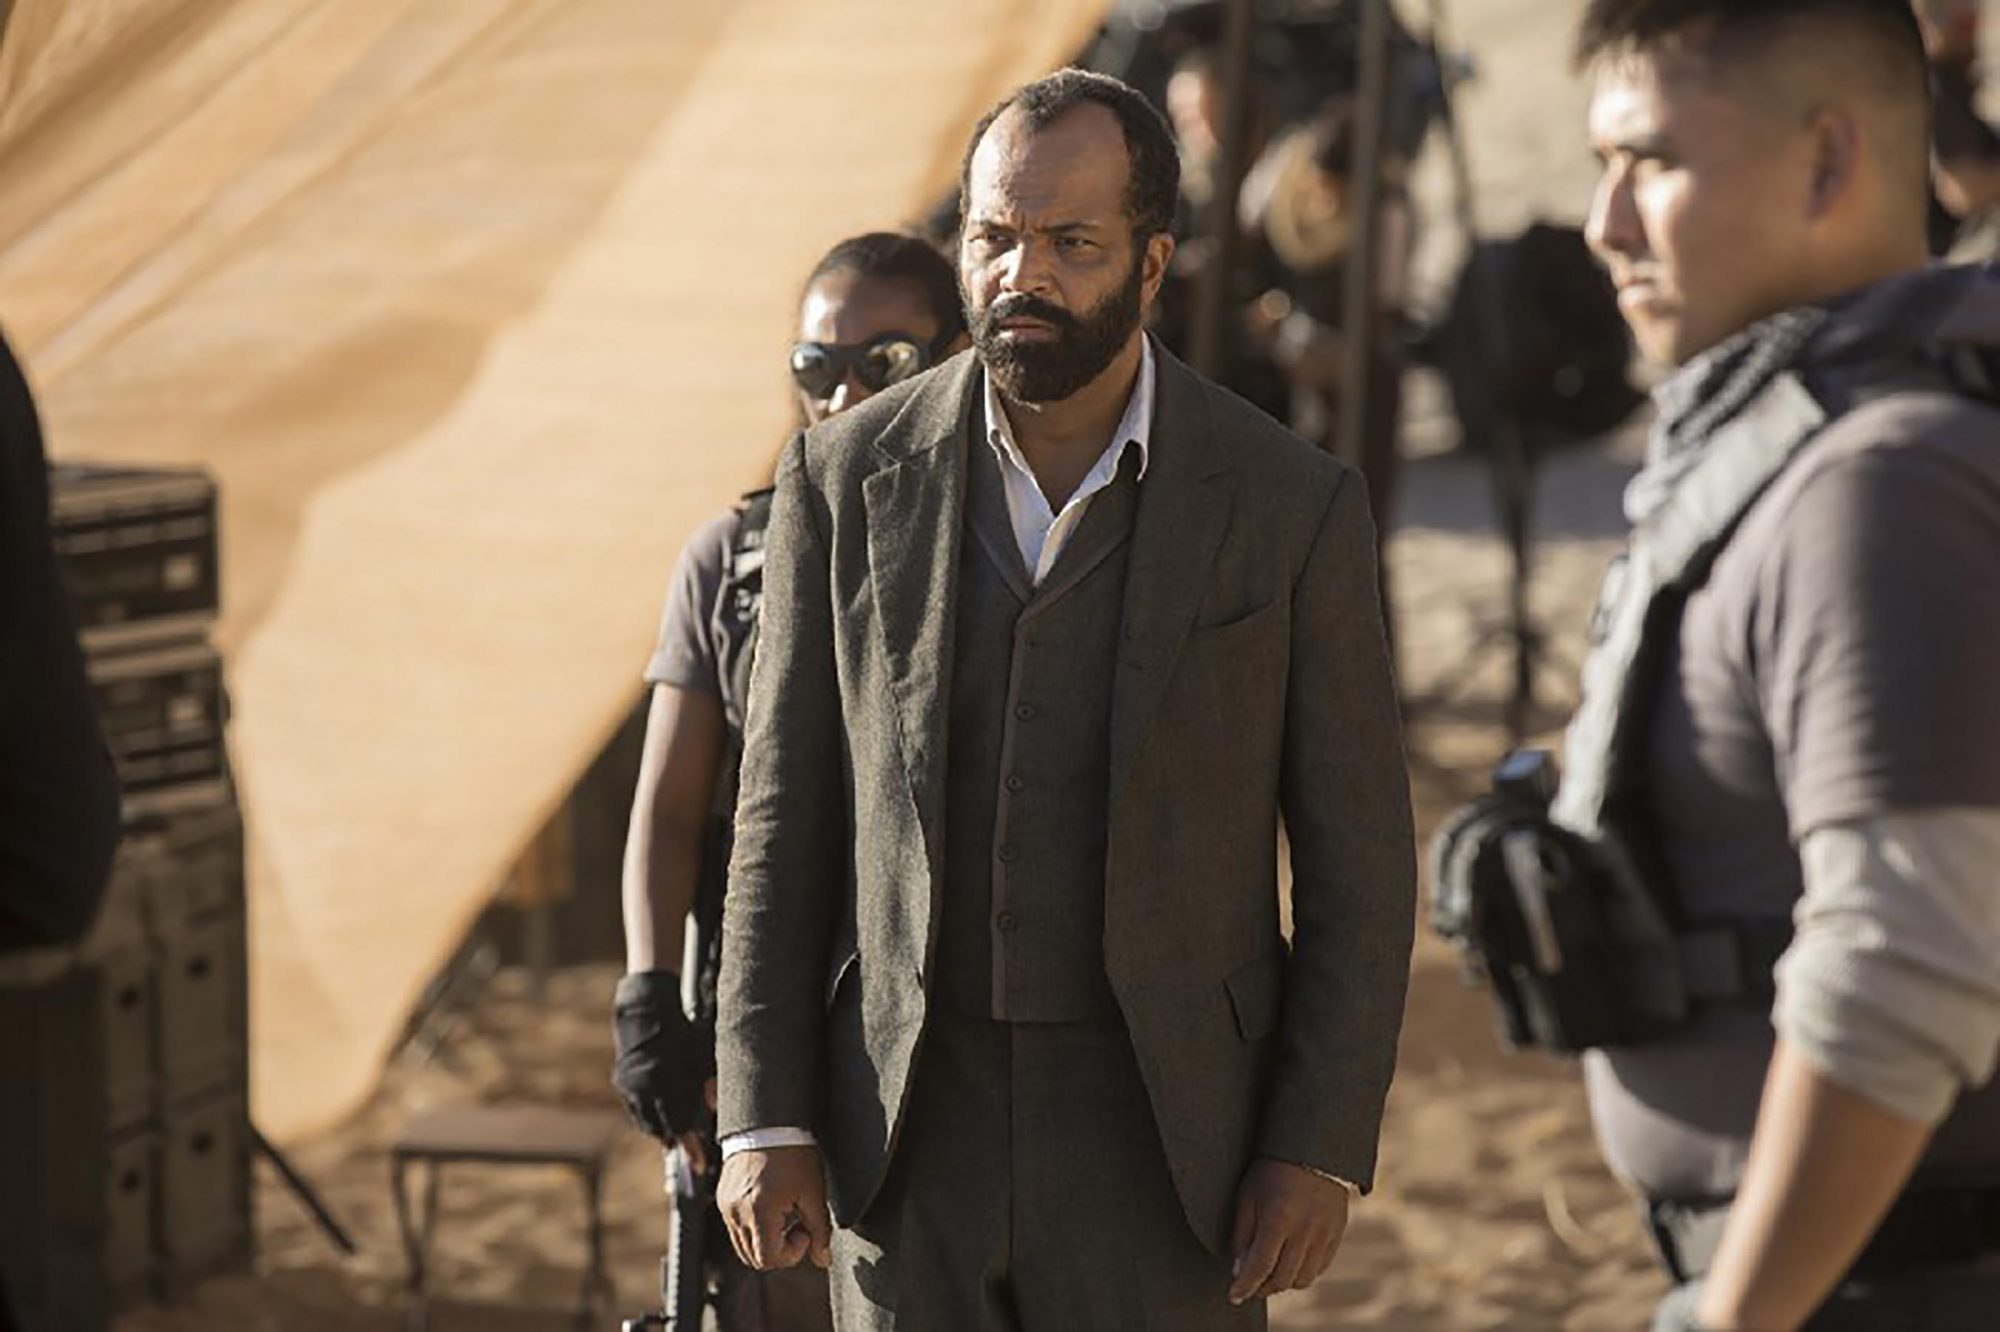 Westworld Season 2 CR: John P. Johnson/HBO